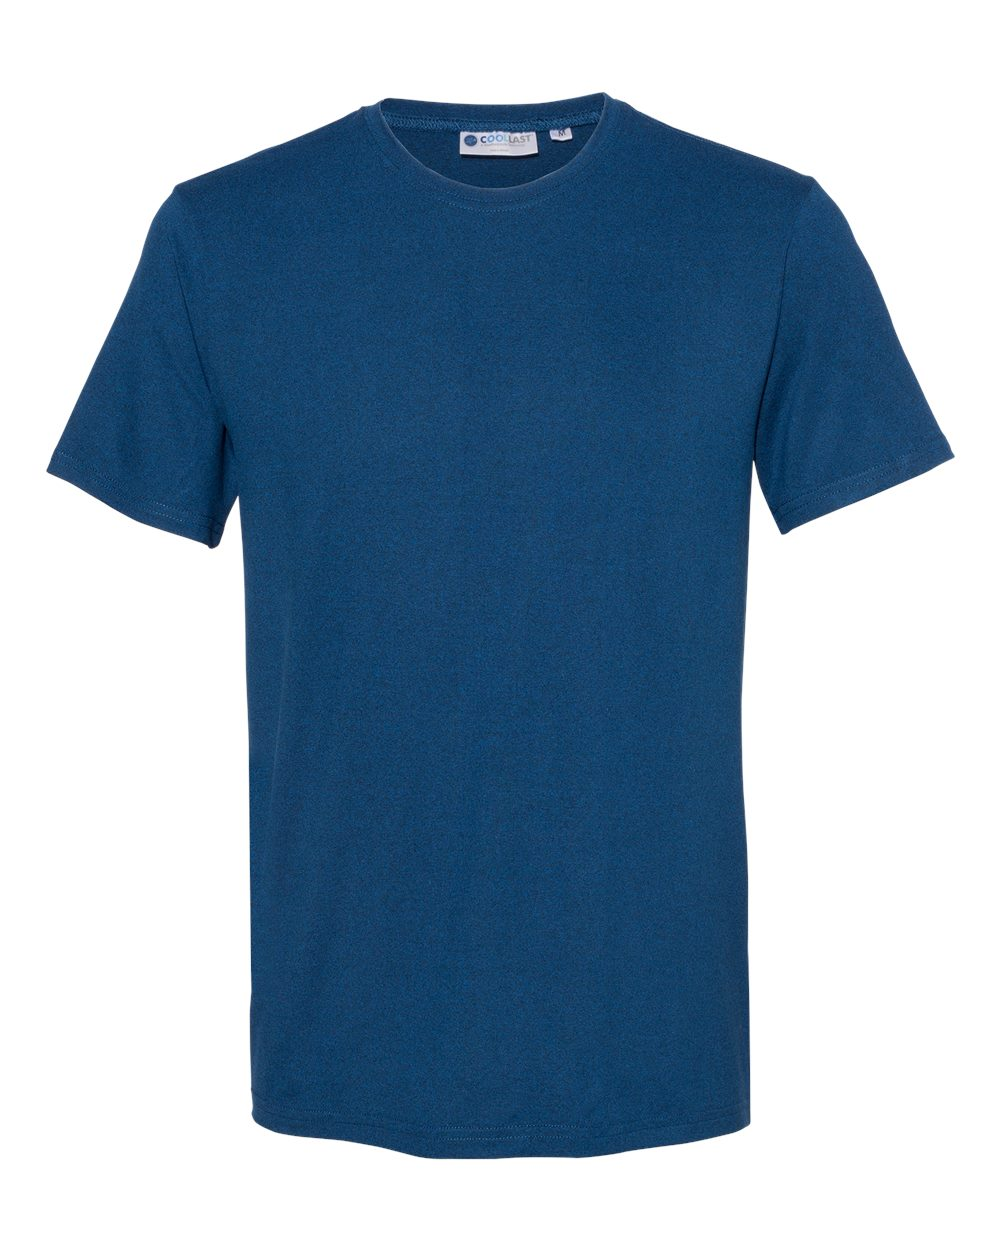 Cool Last Heathered Lux T-Shirt-Weatherproof